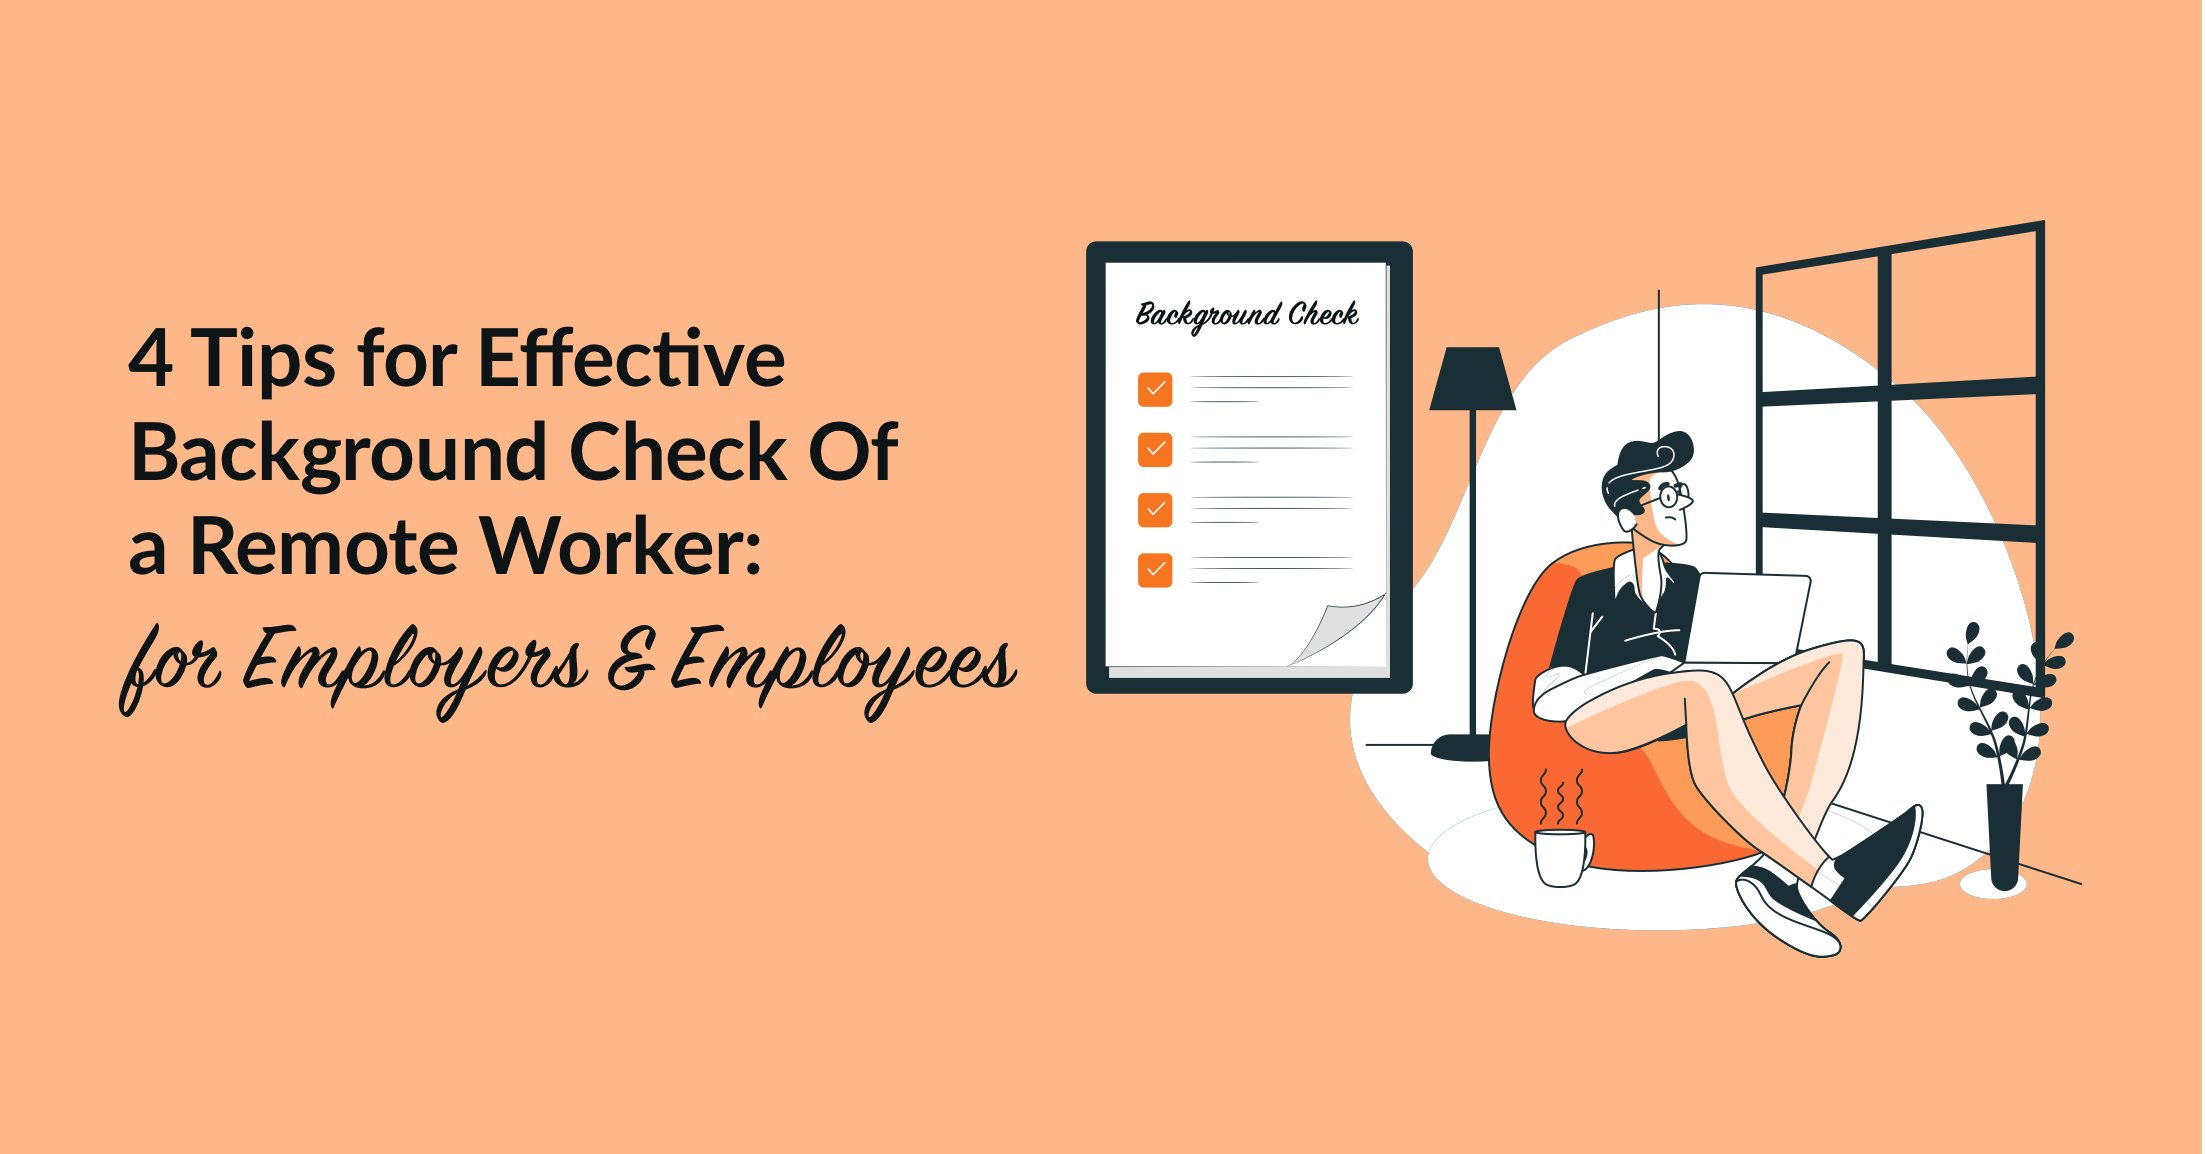 4 Tips for Effective Background Check Of a Remote Worker: for Employers & Employees